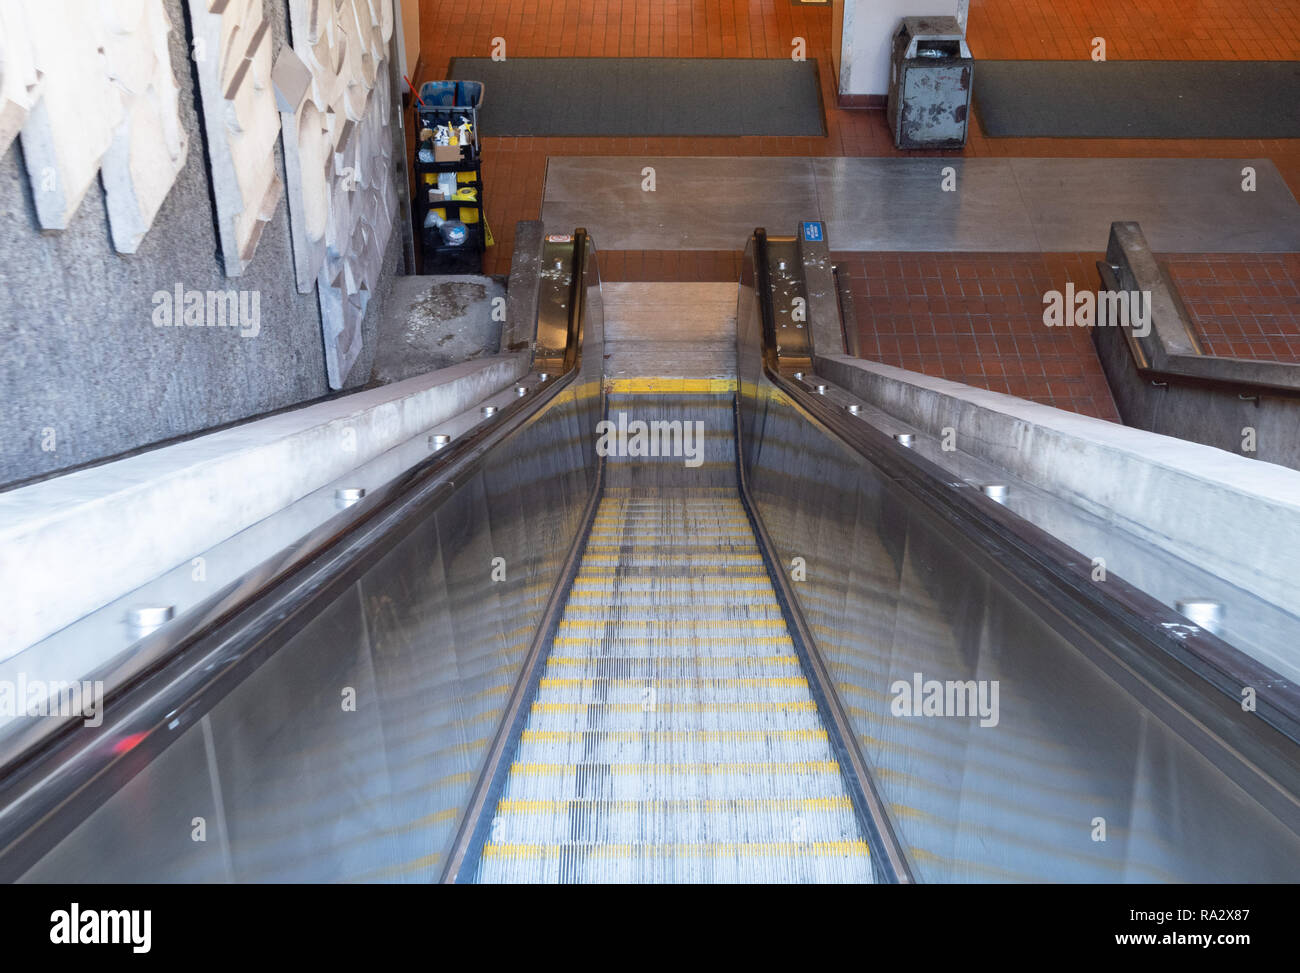 Escalator leading down into a subway tunnel in the daytime - Stock Image